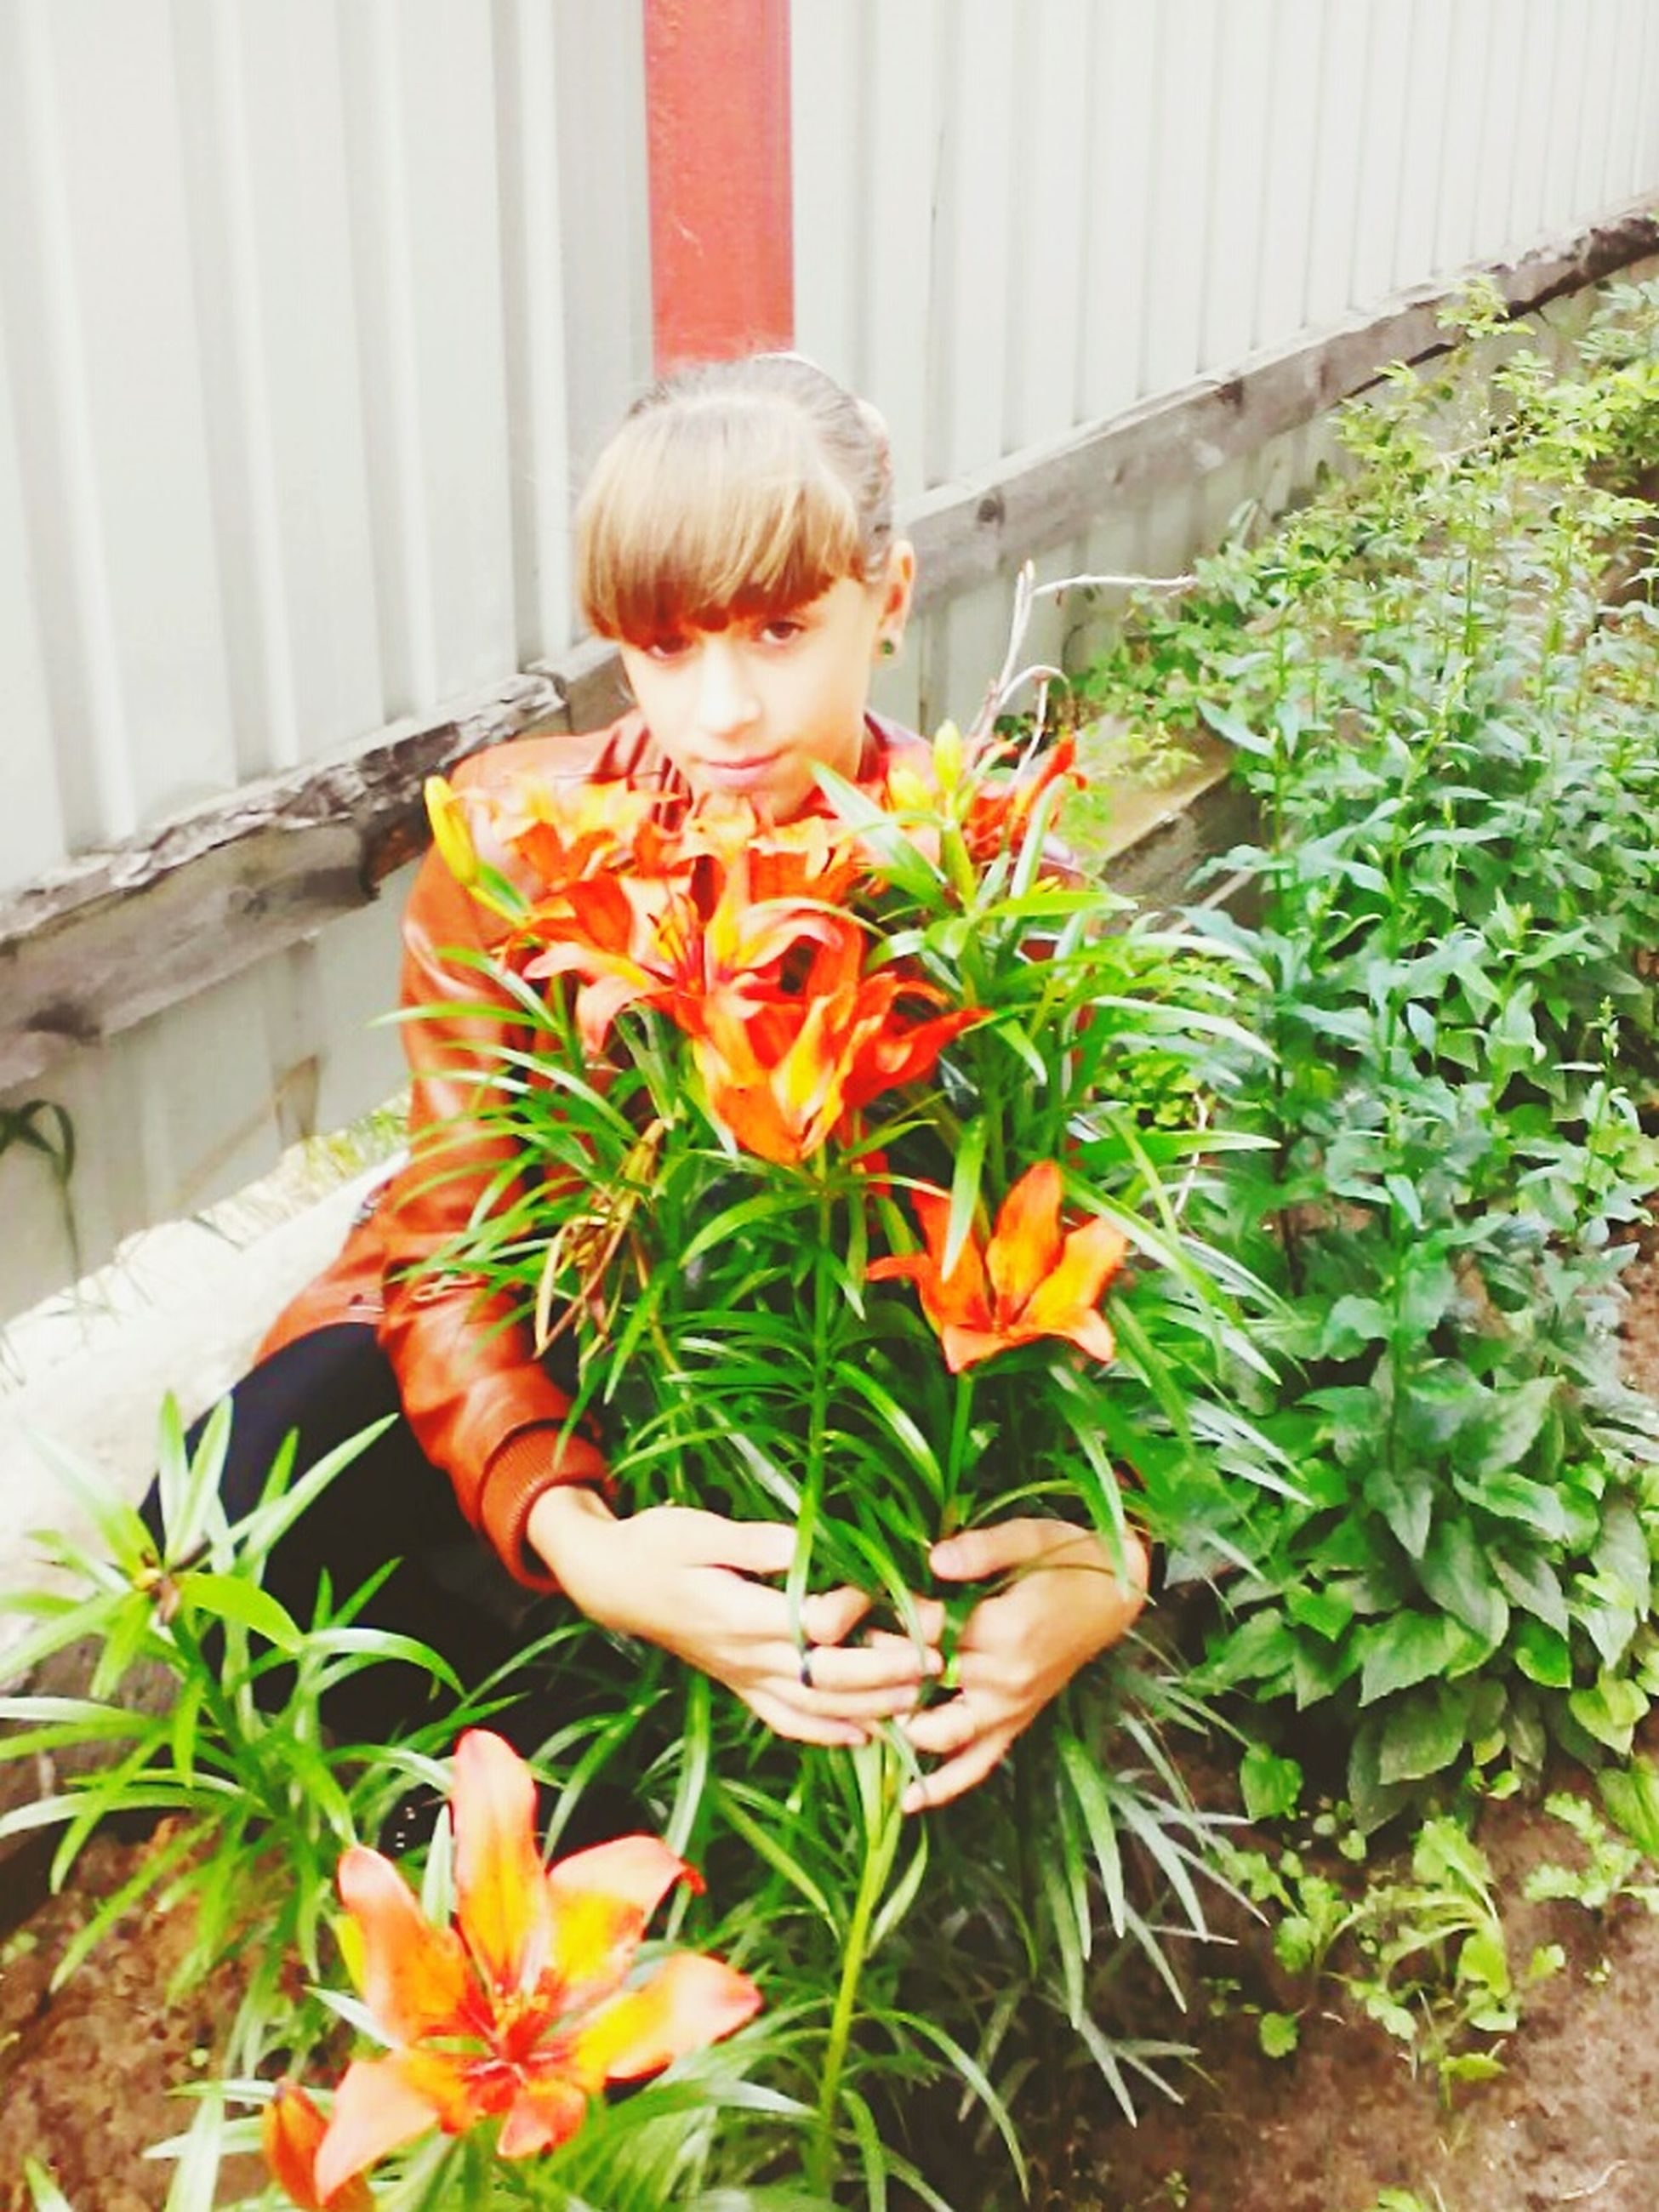 childhood, elementary age, flower, person, casual clothing, girls, innocence, lifestyles, leisure activity, boys, cute, holding, full length, plant, standing, freshness, fragility, front or back yard